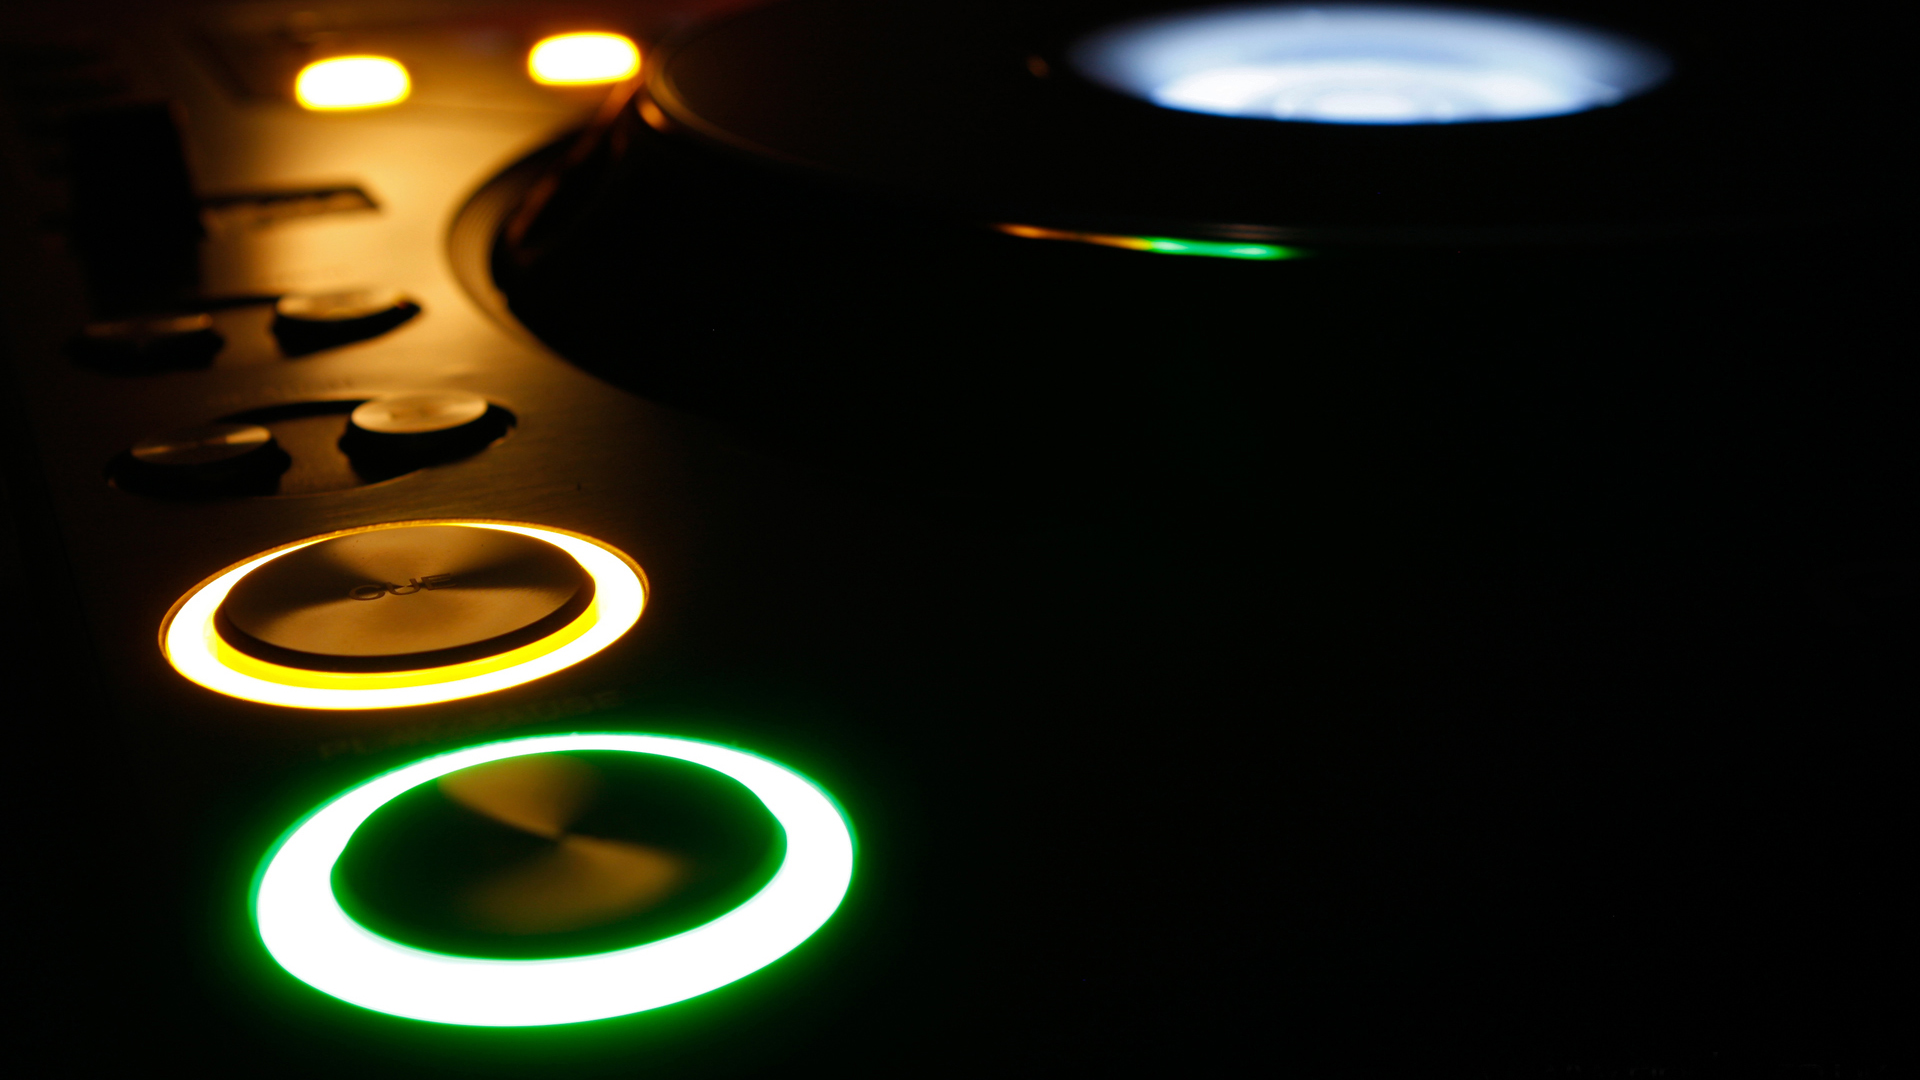 Photo Collection Cool Wallpapers For Laptop Of Music